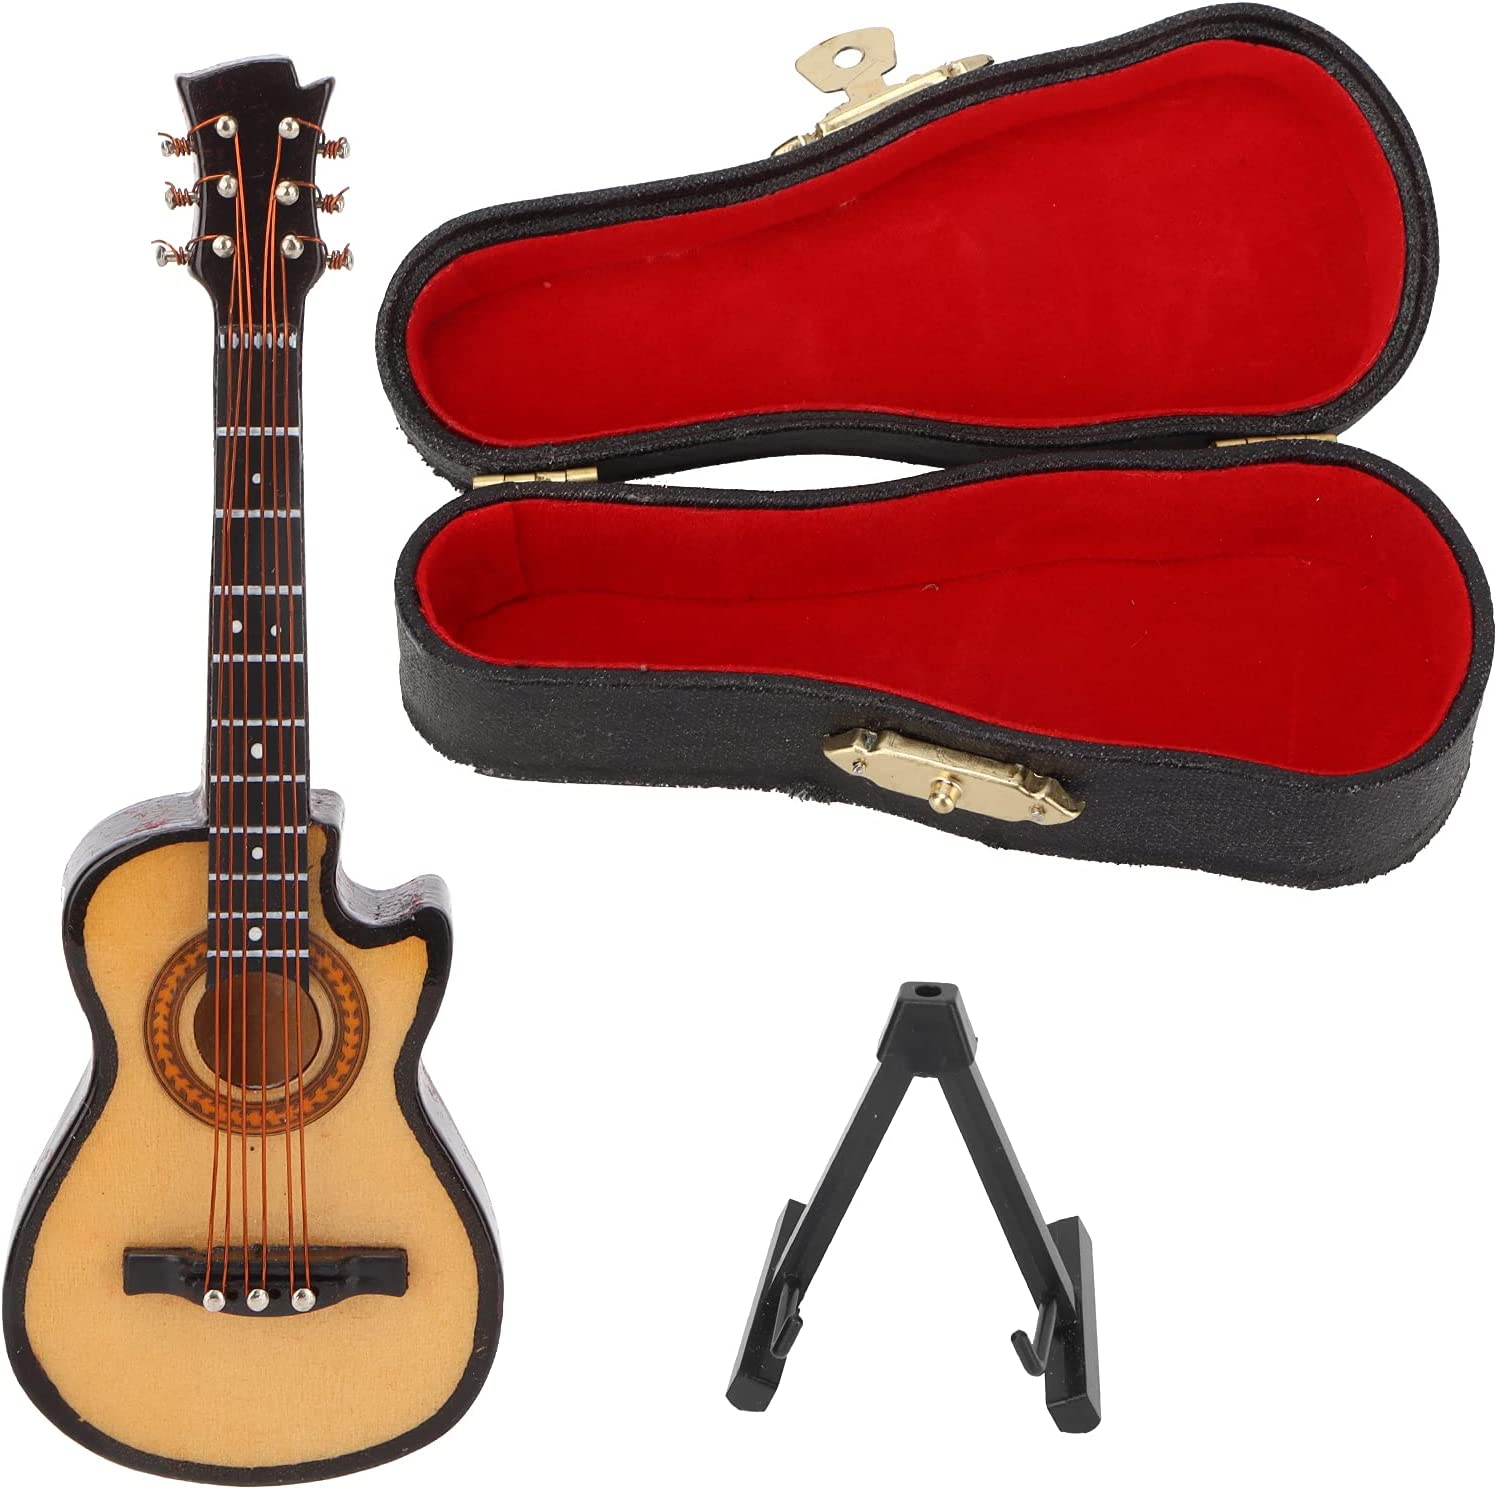 2021new shipping free shipping Electric Guitar Music Instrument Japan Maker New Miniature Minia Wooden Replica